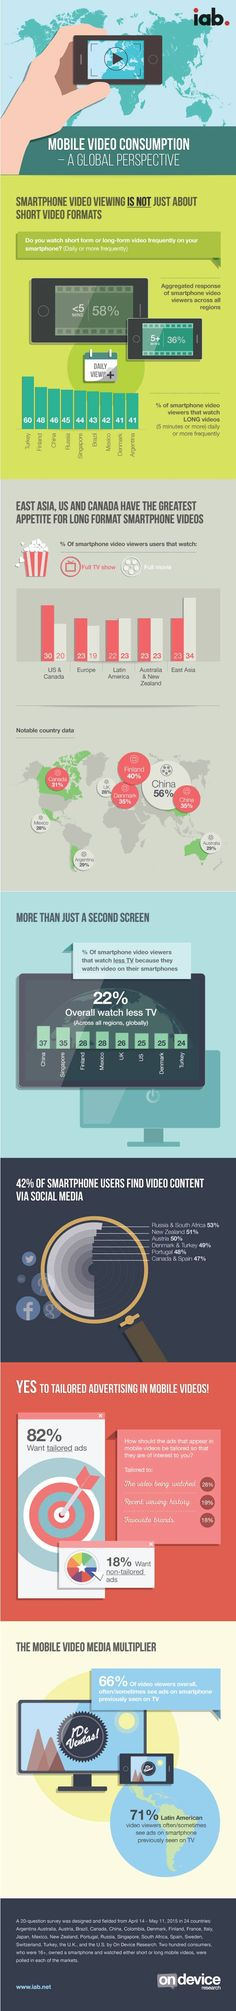 Content - Consumers' Mobile Video Viewing Habits [Infographic] : MarketingProfs Article